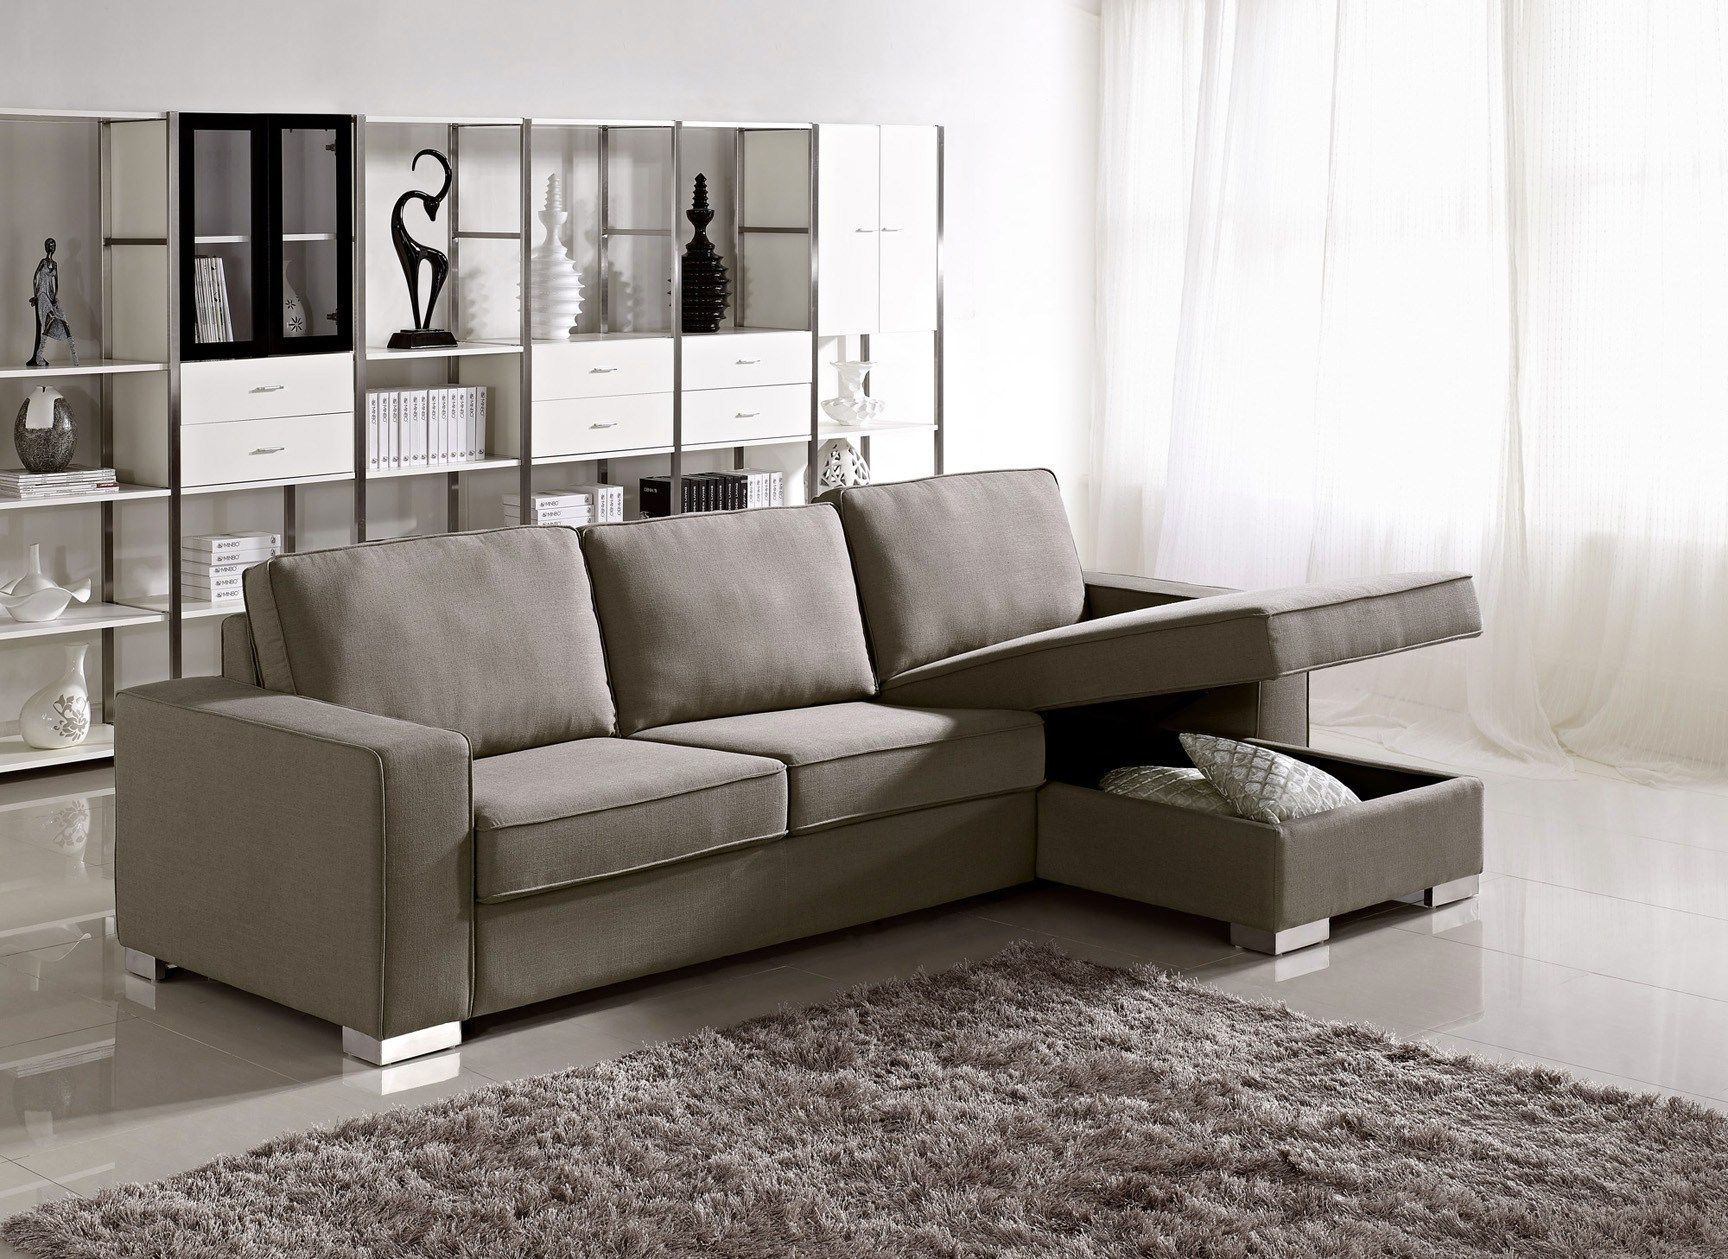 Pin By Dewa Sia On E Rheumatism Net Pinterest Chaise Lounges  ~ Most Comfortable Sofa Bed